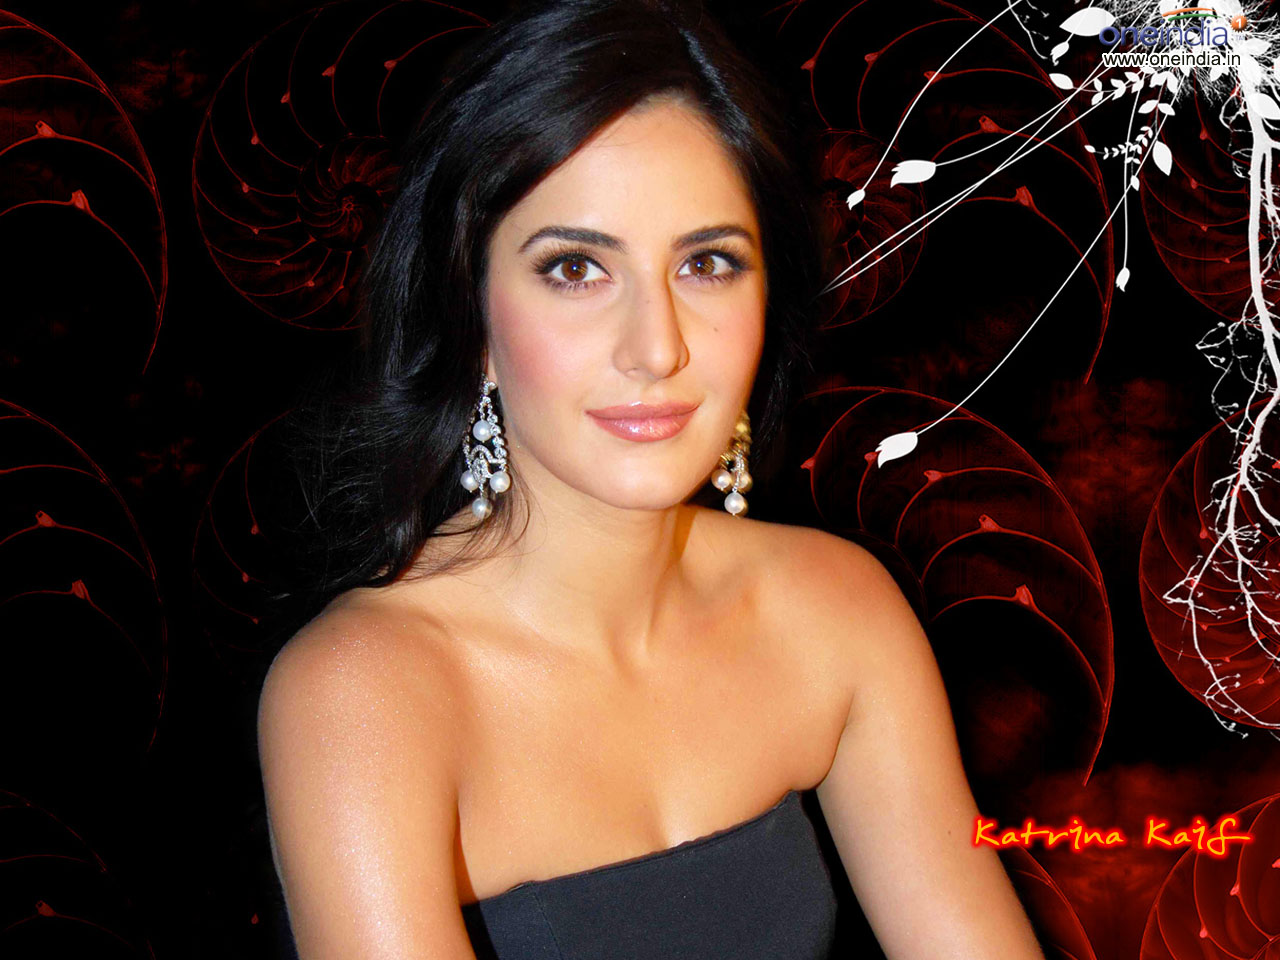 Katrina Kaif's Sexy Pictures: Wallpapers of Katrina Kaif